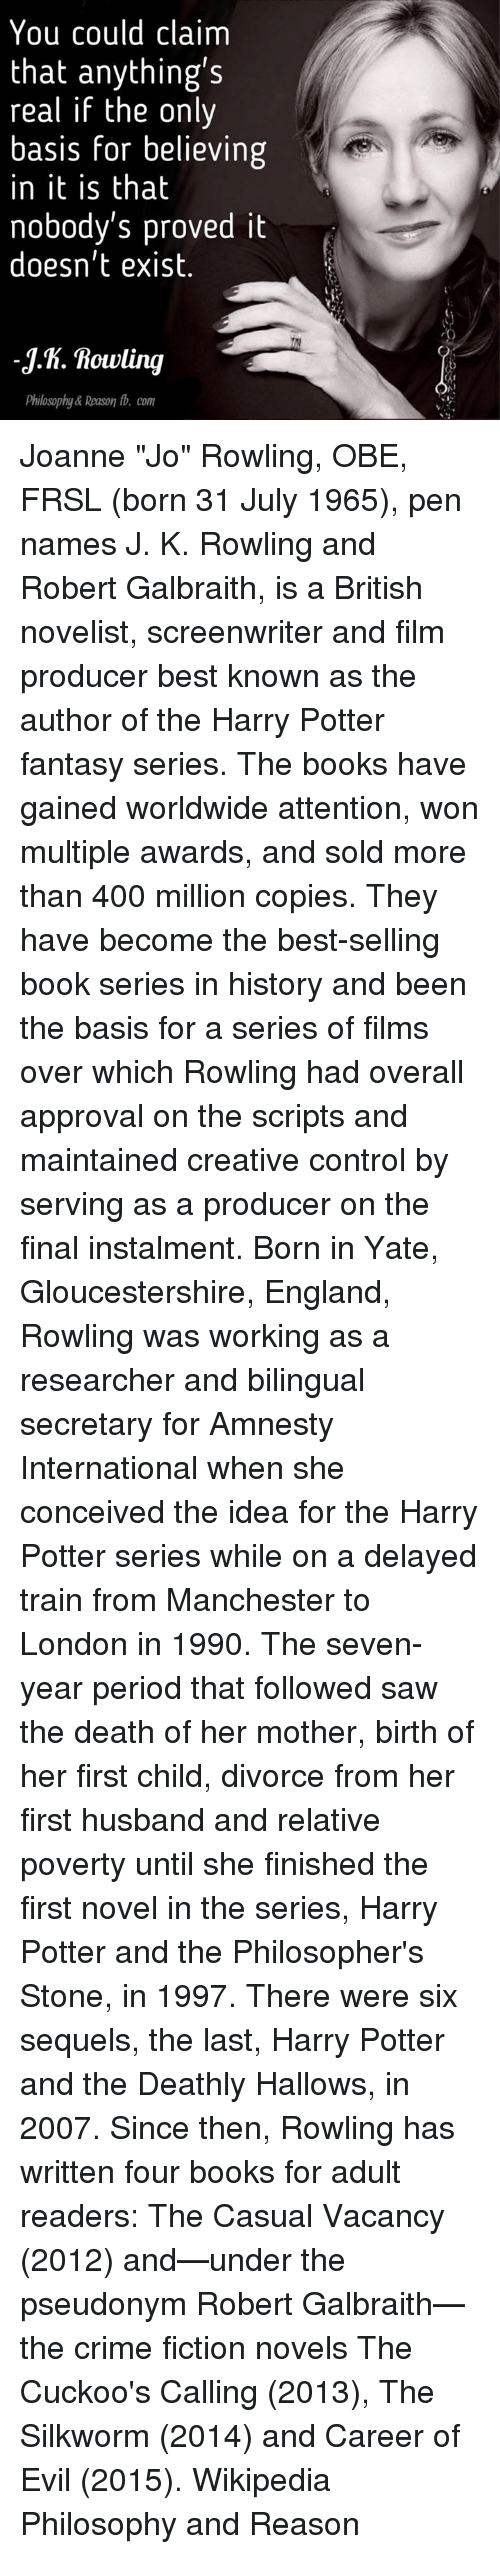 """Memes, 🤖, and Deaths: You could claim  that anything's  real if the only  basis for believing  in it is that  nobody's proved it  doesn't exist.  -y.h. Rowling  philosophy& Reason tb. com Joanne """"Jo"""" Rowling, OBE, FRSL (born 31 July 1965), pen names J. K. Rowling and Robert Galbraith, is a British novelist, screenwriter and film producer best known as the author of the Harry Potter fantasy series. The books have gained worldwide attention, won multiple awards, and sold more than 400 million copies. They have become the best-selling book series in history and been the basis for a series of films over which Rowling had overall approval on the scripts and maintained creative control by serving as a producer on the final instalment.  Born in Yate, Gloucestershire, England, Rowling was working as a researcher and bilingual secretary for Amnesty International when she conceived the idea for the Harry Potter series while on a delayed train from Manchester to London in 1990. The seven-year period that followed saw the death of her mother, birth of her first child, divorce from her first husband and relative poverty until she finished the first novel in the series, Harry Potter and the Philosopher's Stone, in 1997. There were six sequels, the last, Harry Potter and the Deathly Hallows, in 2007. Since then, Rowling has written four books for adult readers: The Casual Vacancy (2012) and—under the pseudonym Robert Galbraith—the crime fiction novels The Cuckoo's Calling (2013), The Silkworm (2014) and Career of Evil (2015). Wikipedia  Philosophy and Reason"""